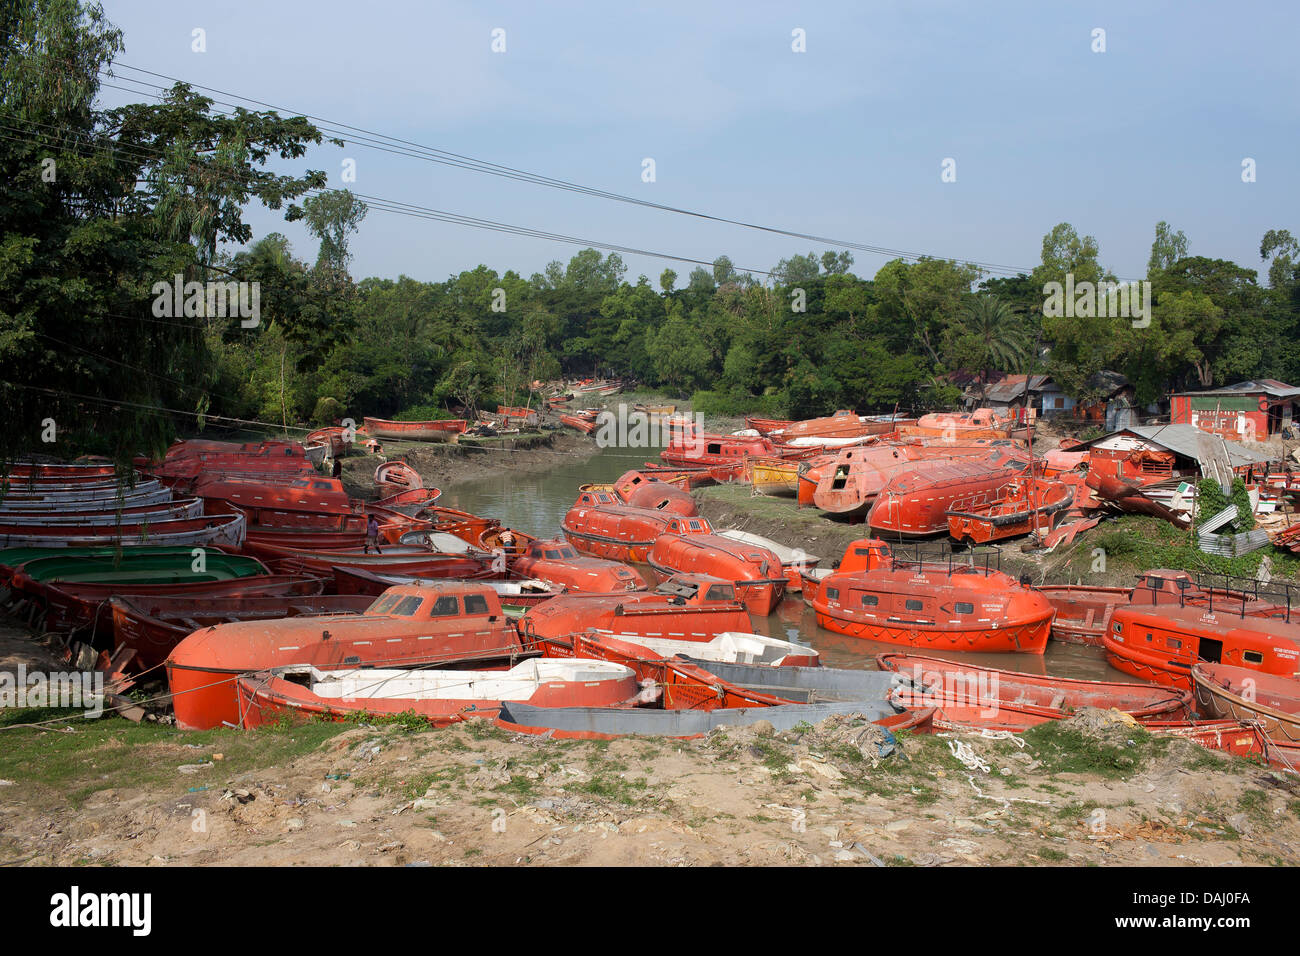 Old discarded bright orange life boats from ships for sale close ...